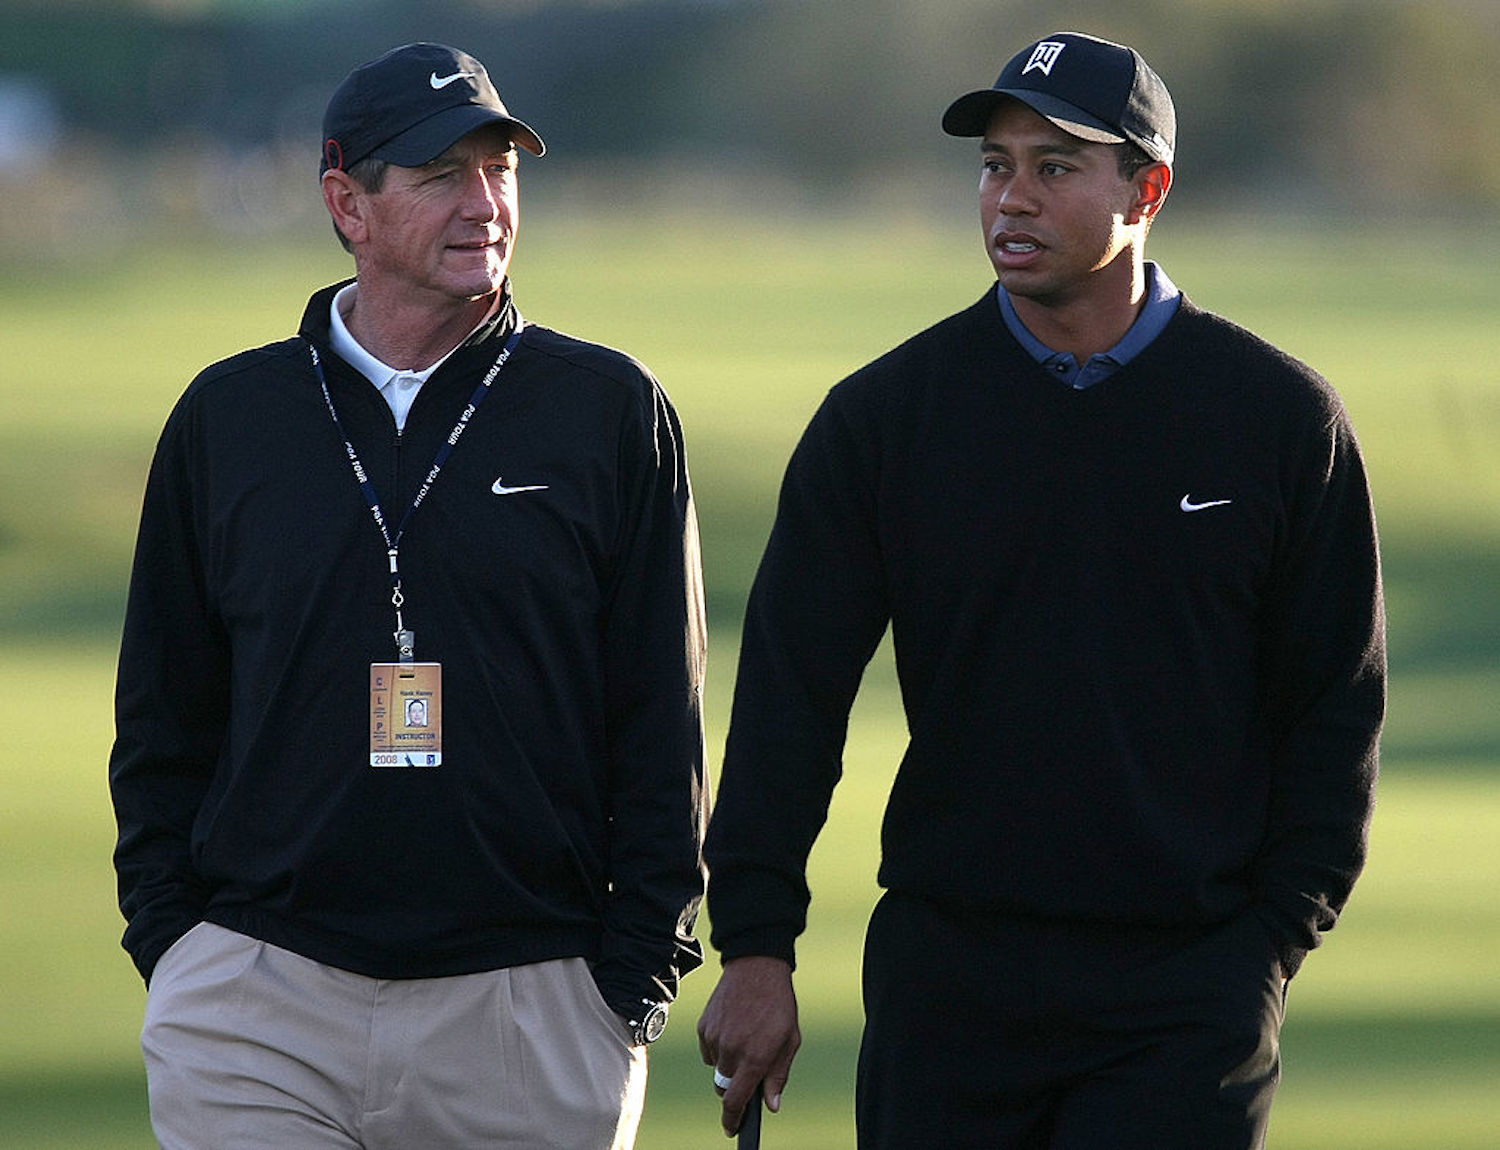 Tiger Woods flew pretty under the radar heading into the 2020 PGA Championship, but his former coach believes he's the one to beat.